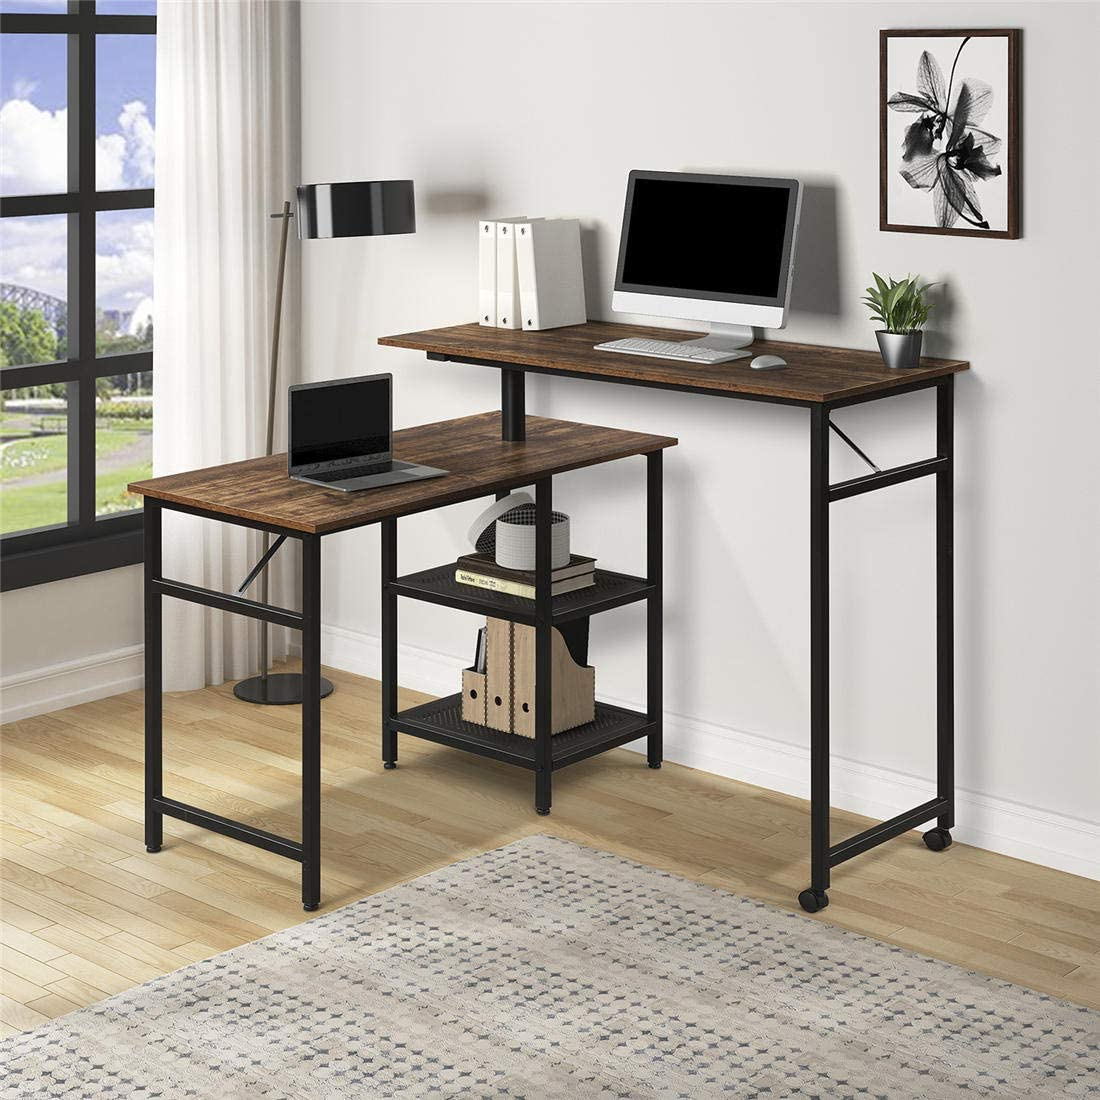 43.3Lx43.3''D Home Office L Shaped Rotating Standing Computer Desk, Industrial 360 Degrees Free Rotating Corner Computer Desk with Storage Shelf for Small Spaces (Brown)